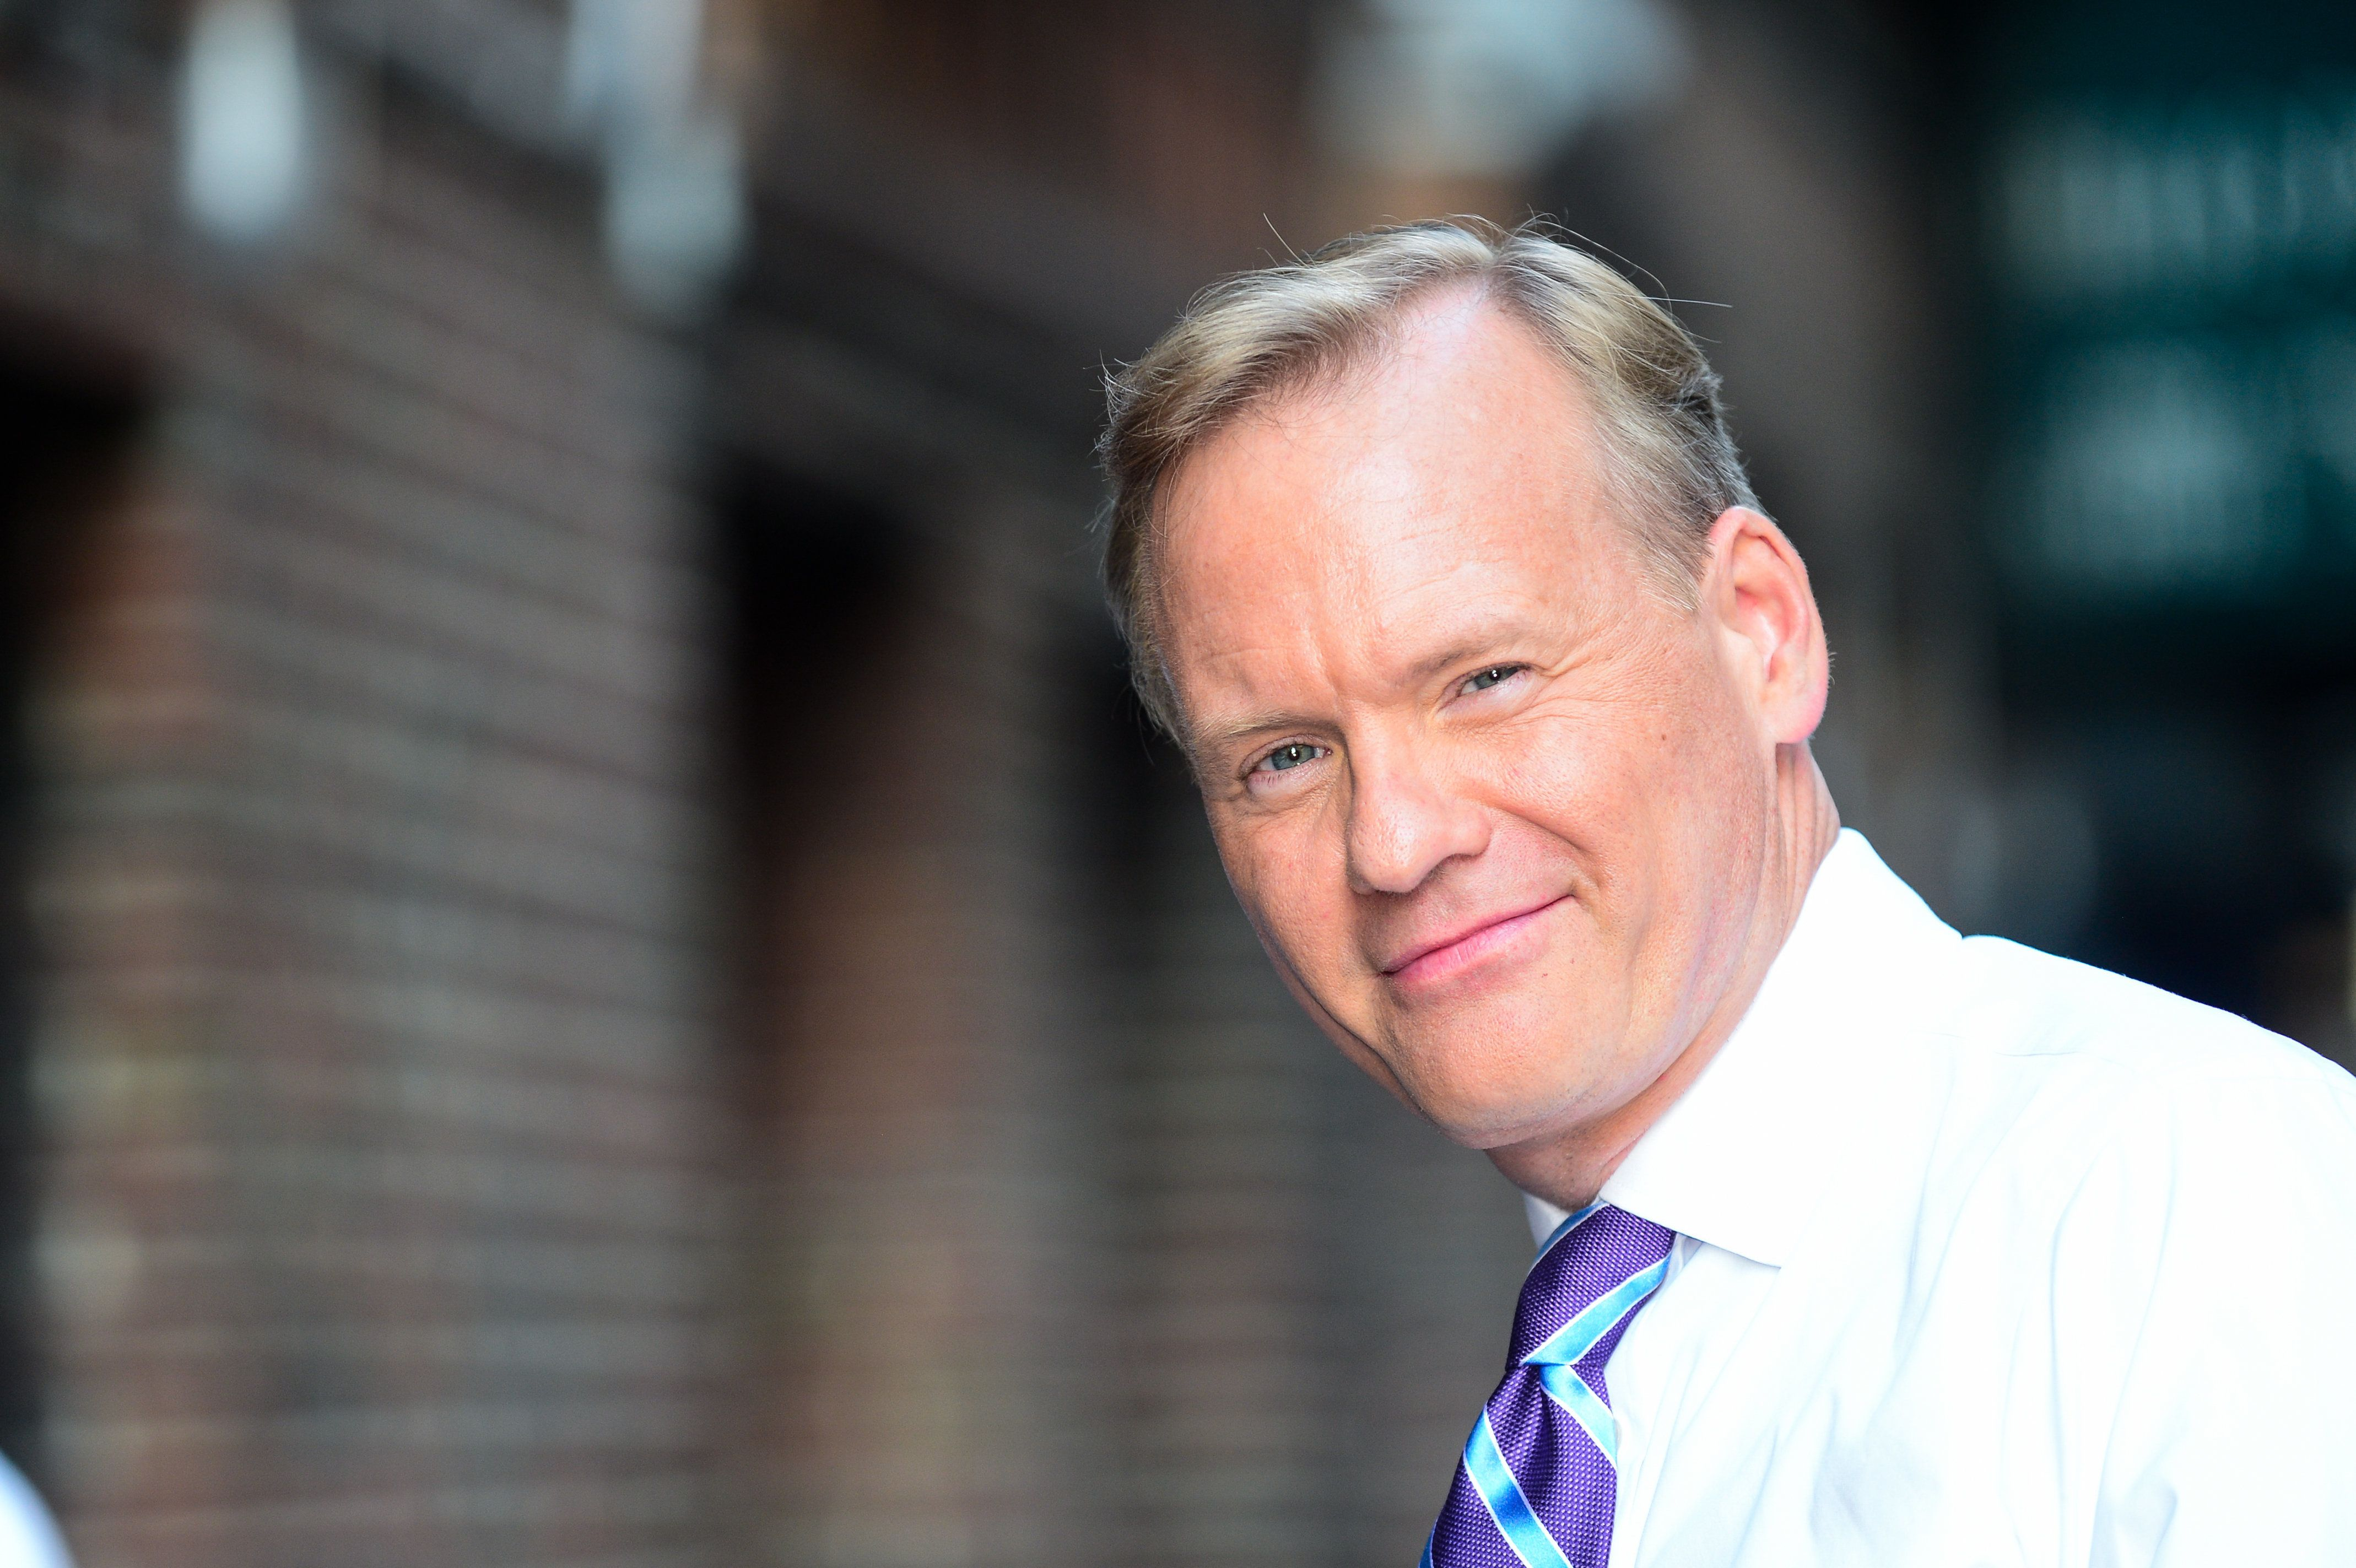 NEW YORK, NY - AUGUST 17:  Television journalist John Dickerson enters the 'The Late Show With Stephen Colbert' taping at the Ed Sullivan Theater on August 17, 2017 in New York City.  (Photo by Ray Tamarra/GC Images)